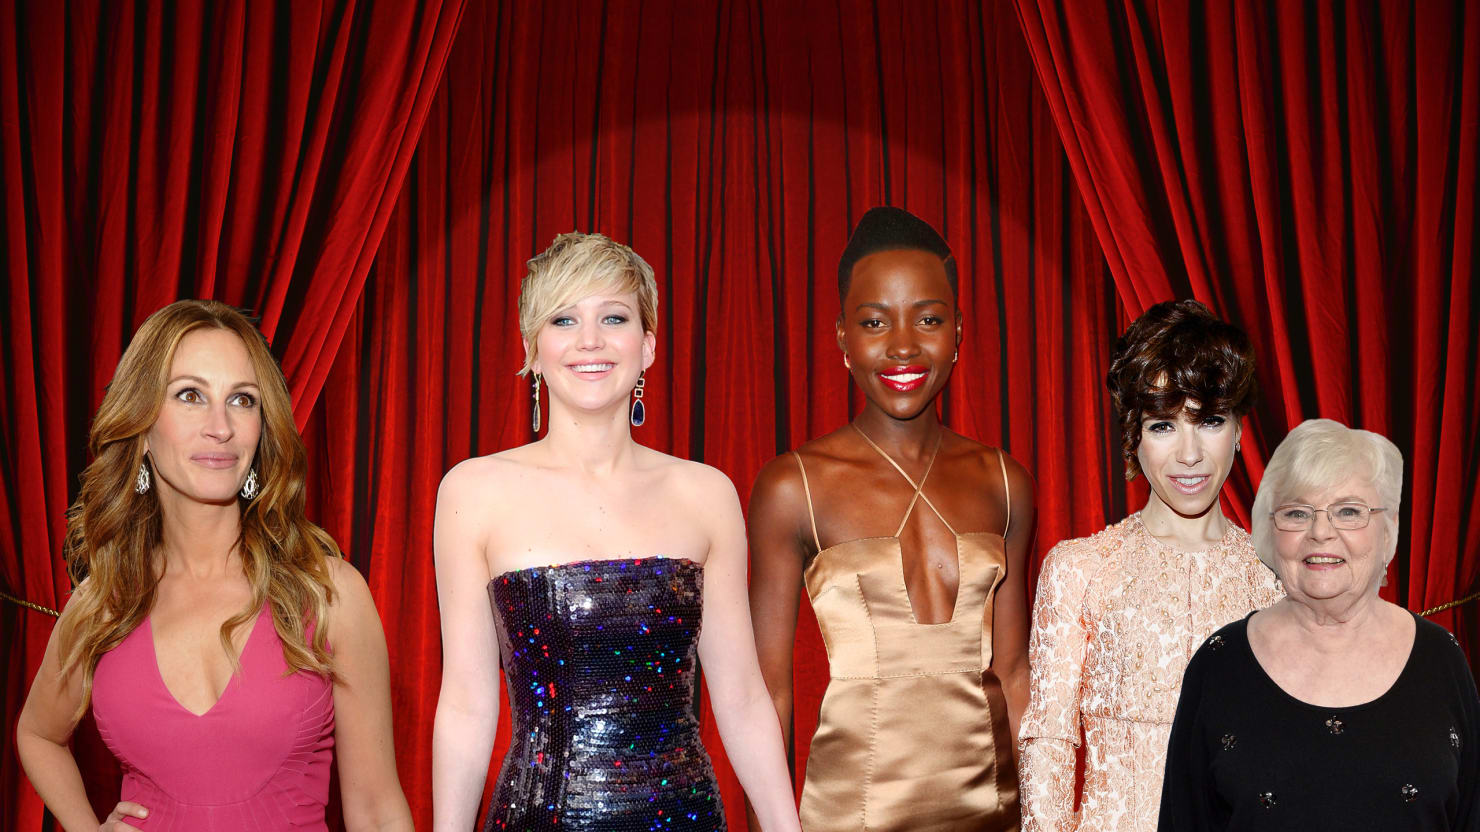 The Tightest Oscar Race: Jennifer Lawrence vs. Lupita Nyong'o for Best Supporting Actress